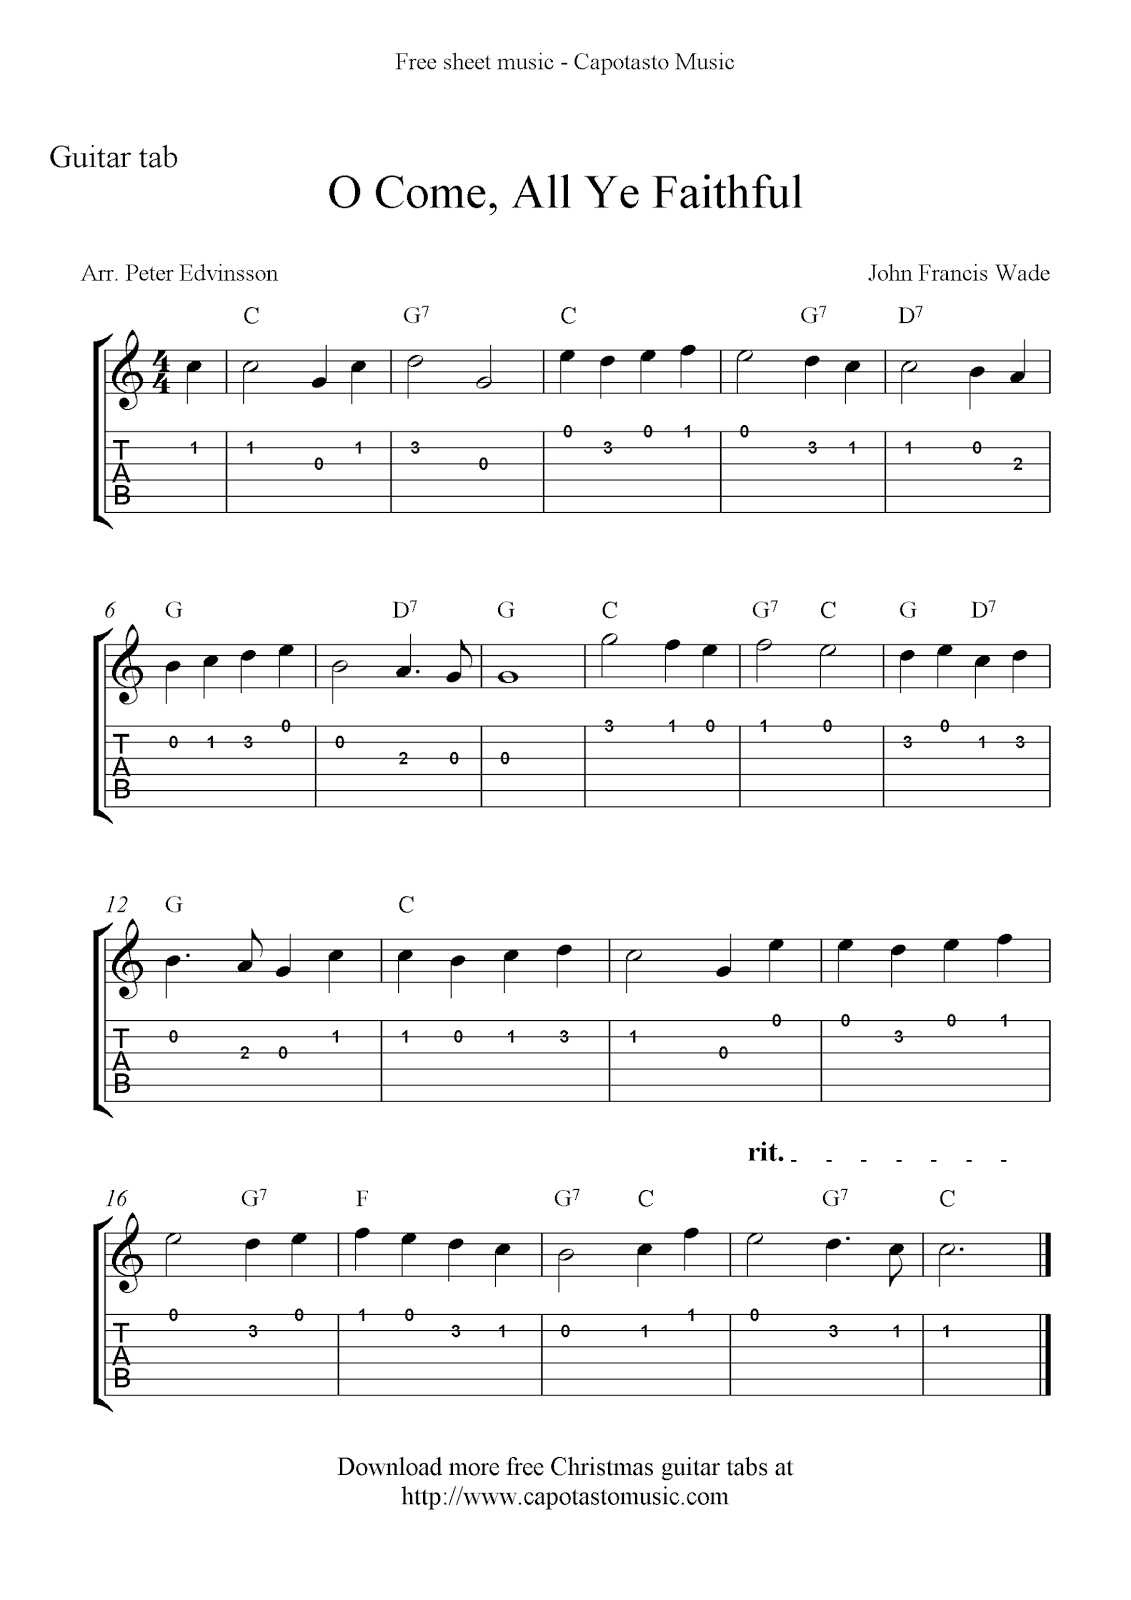 Free Printable Sheet Music: O Come, All Ye Faithful, Easy Free - Free Guitar Sheet Music For Popular Songs Printable